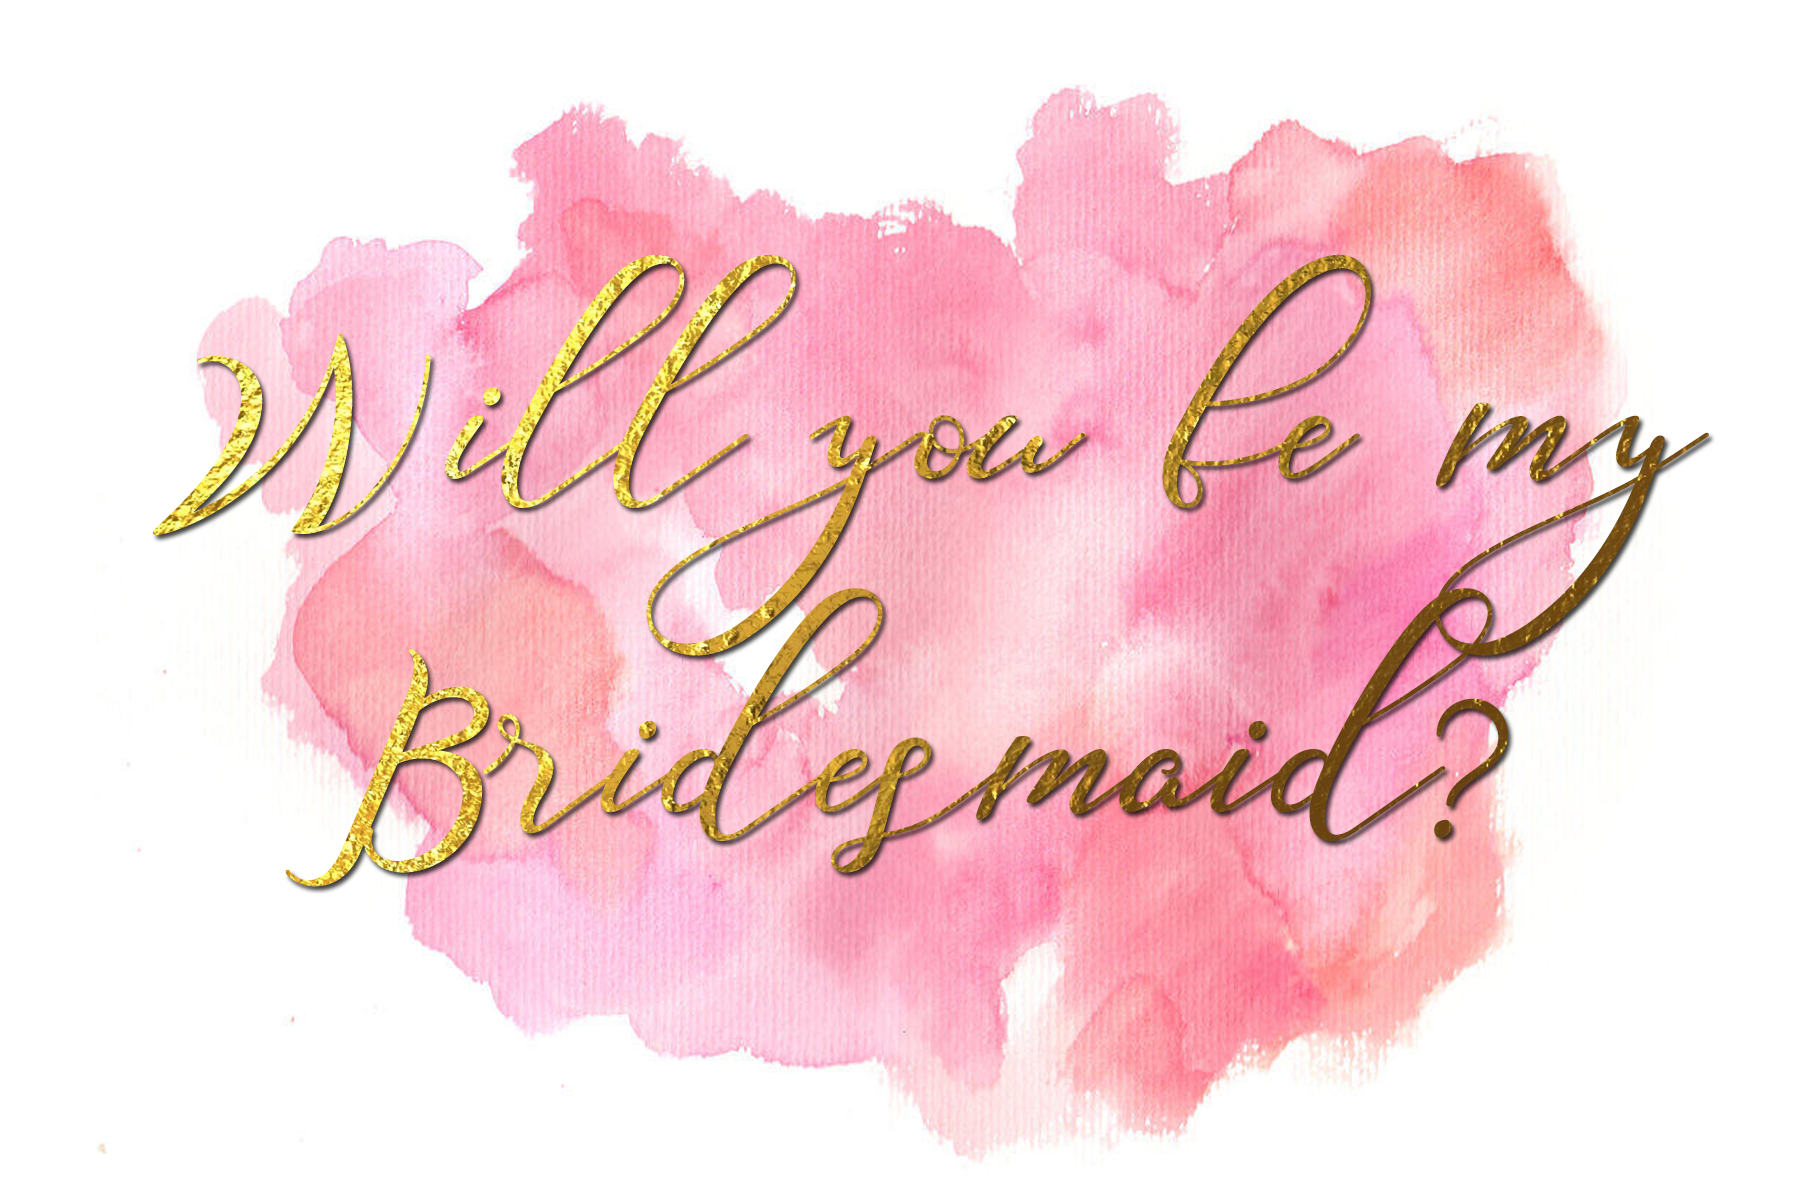 Will You Be My Bridesmaid Free Printable 1 6 X 4 • Fleurieu Weddings - Will You Be My Bridesmaid Free Printable